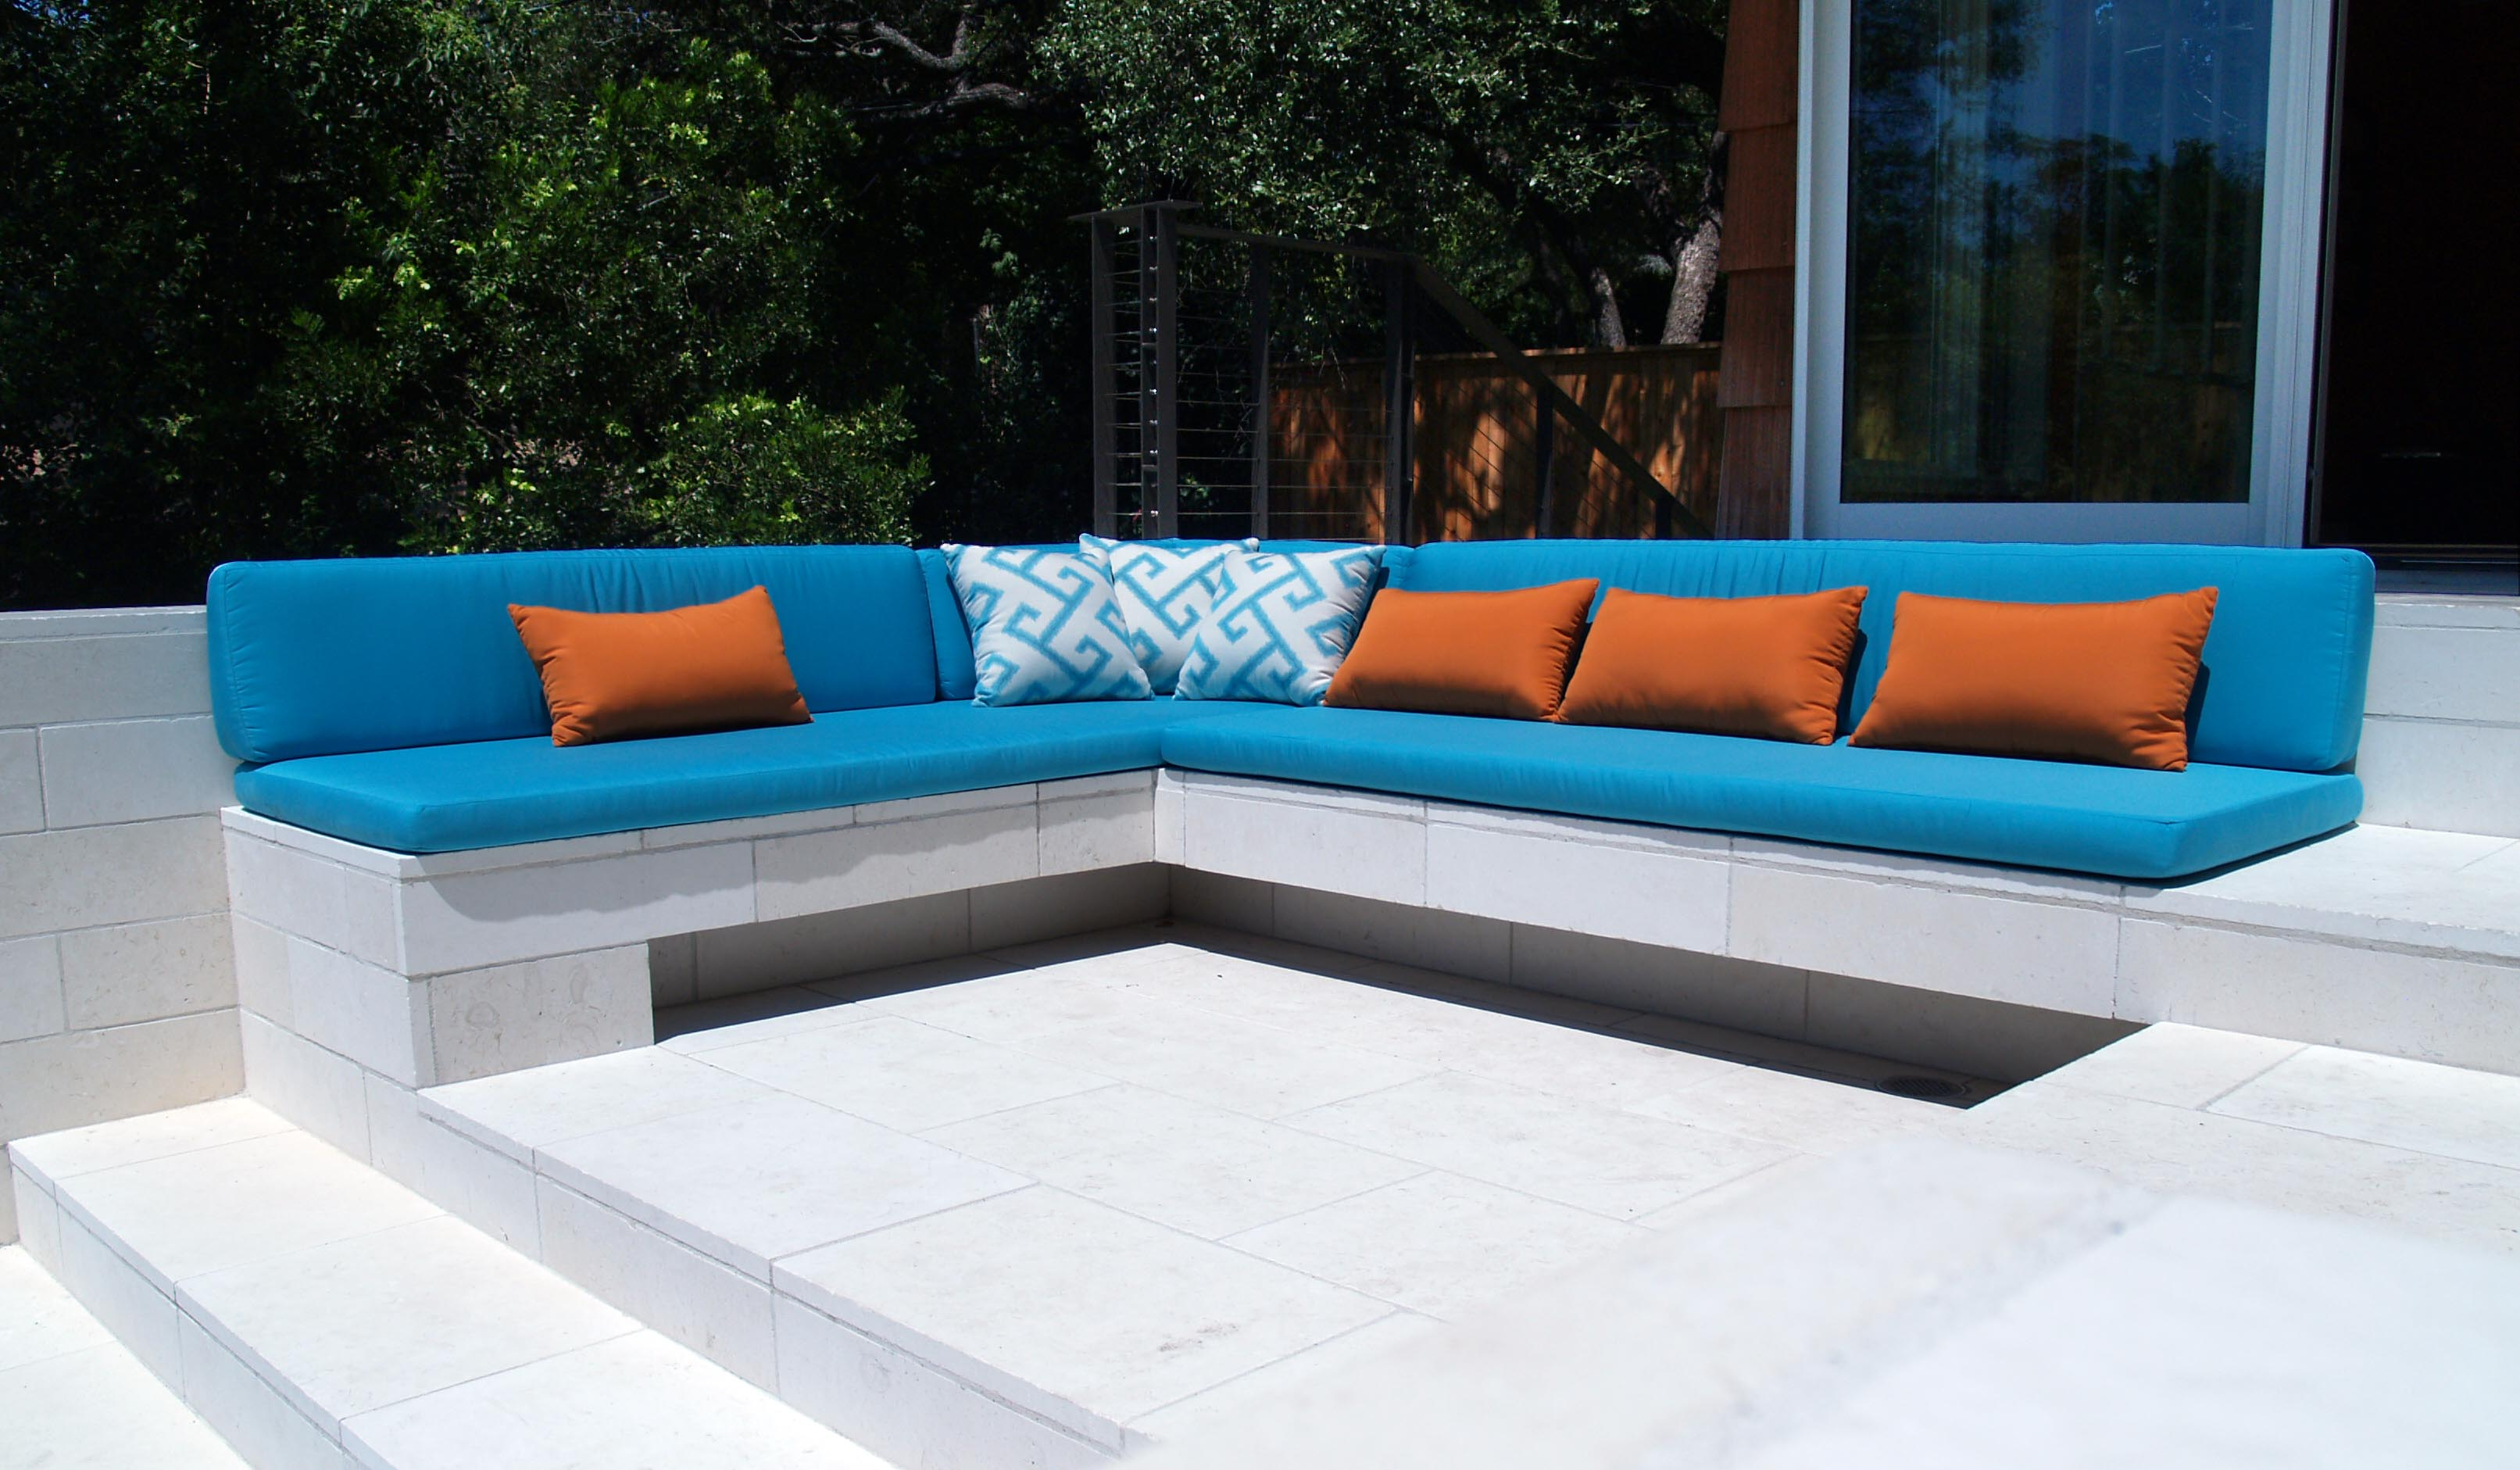 Cushion: Soft Bench Design Ideas With Sunbrella Seat Cushions ...